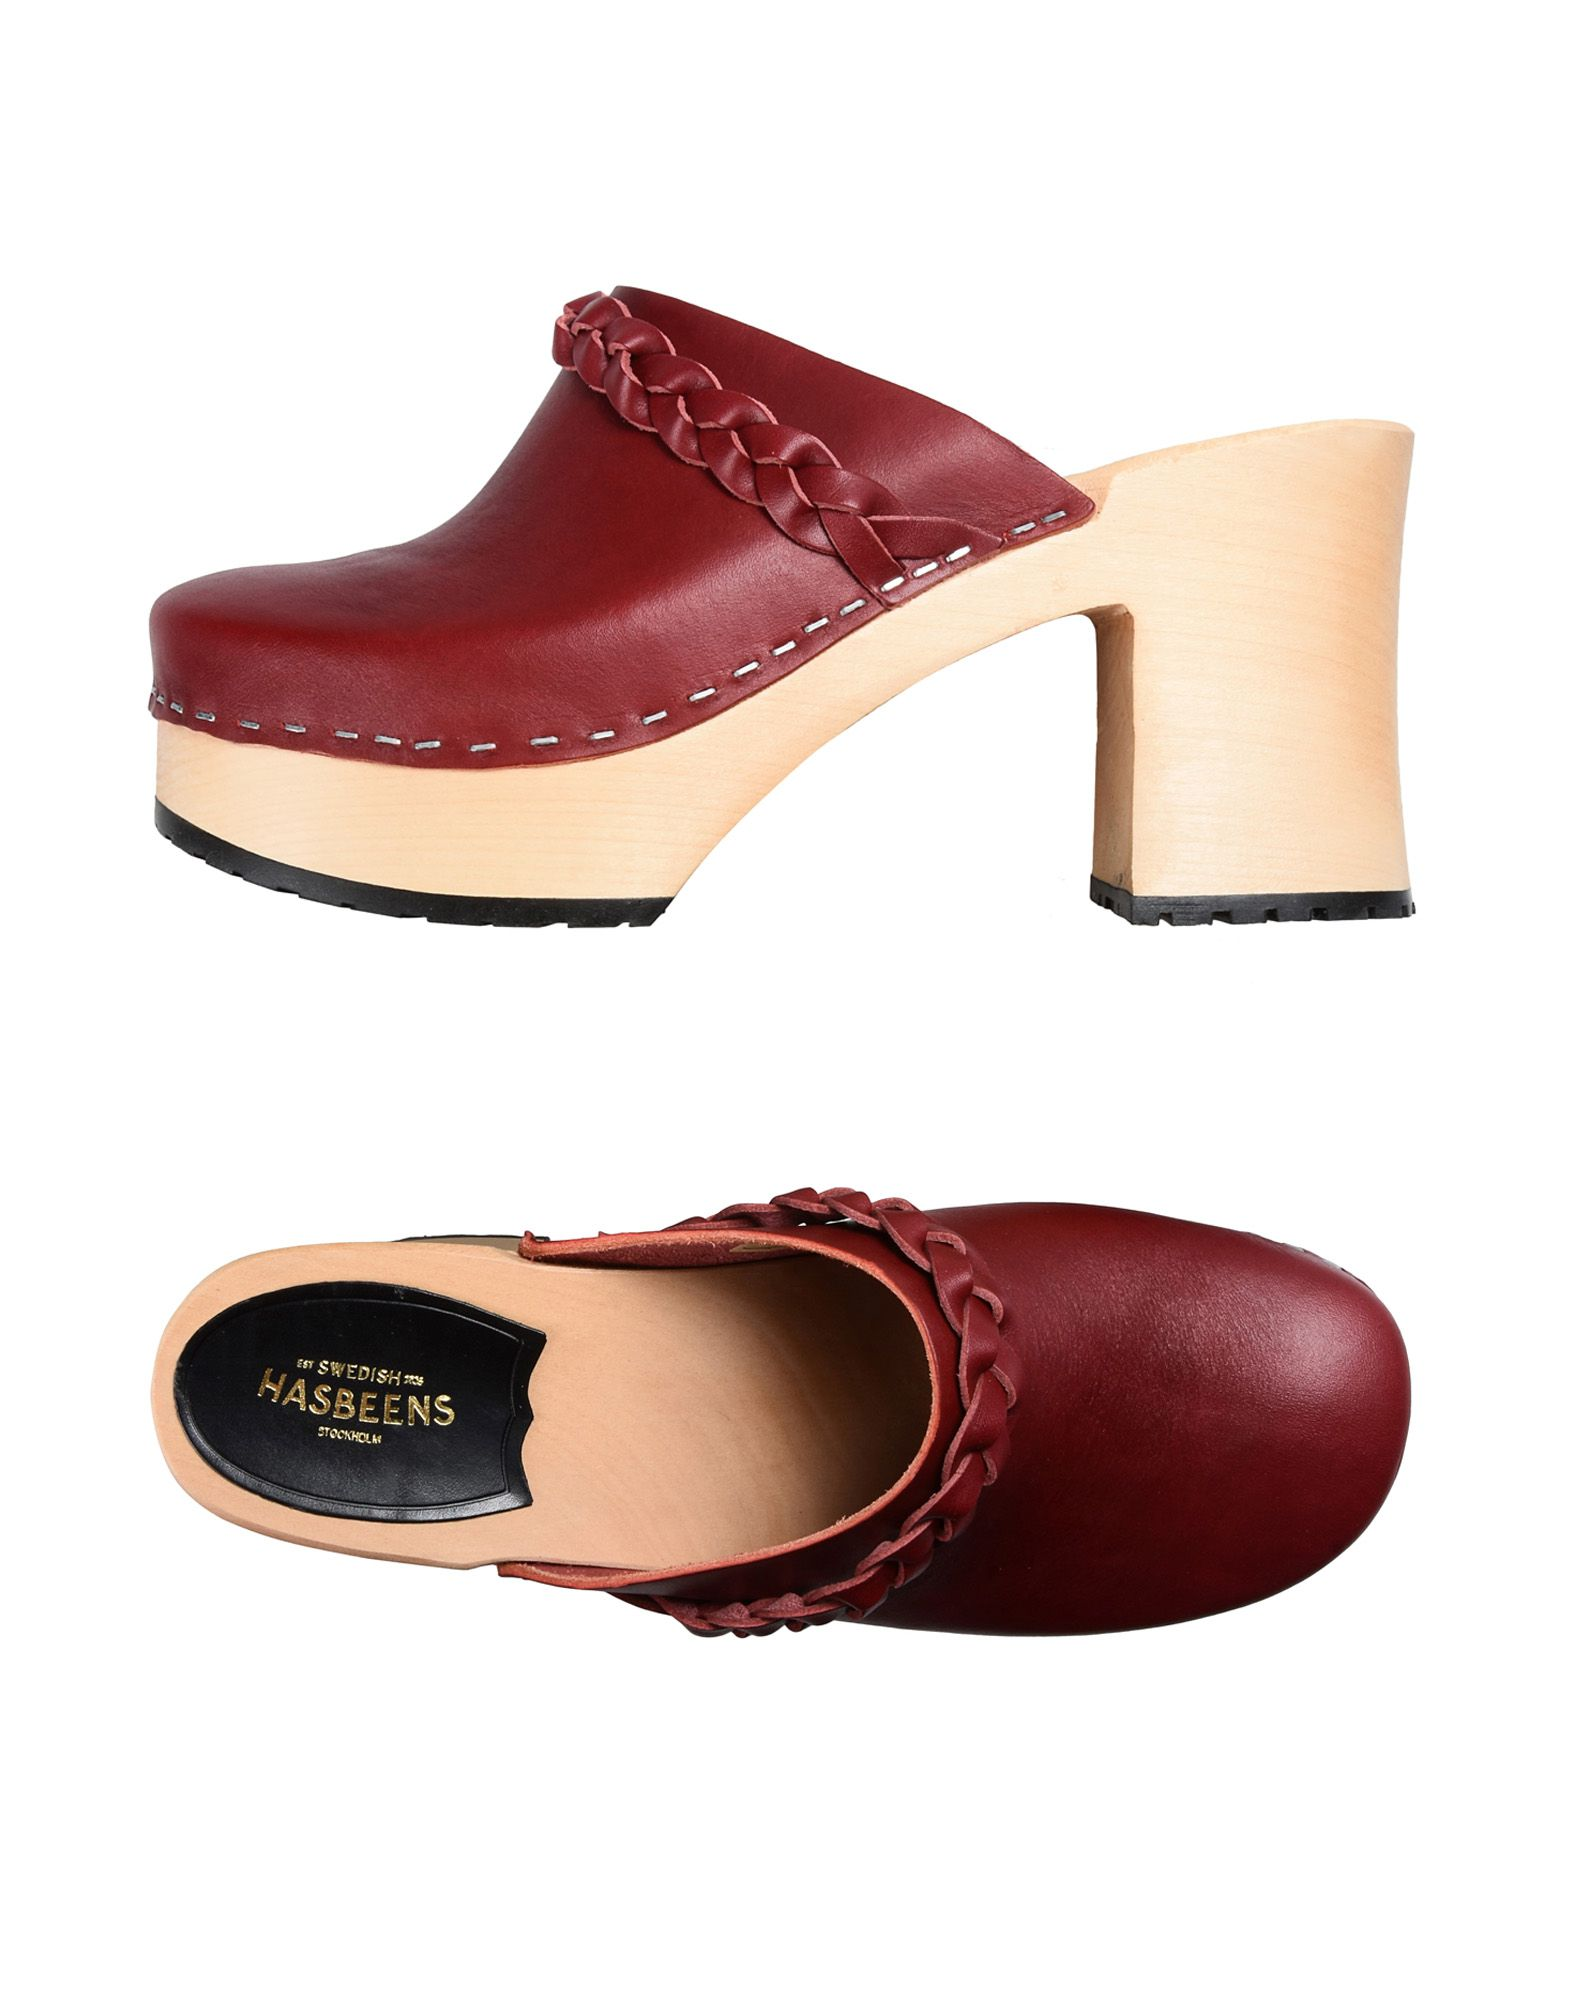 SWEDISH HASBEENS Mules in Brick Red